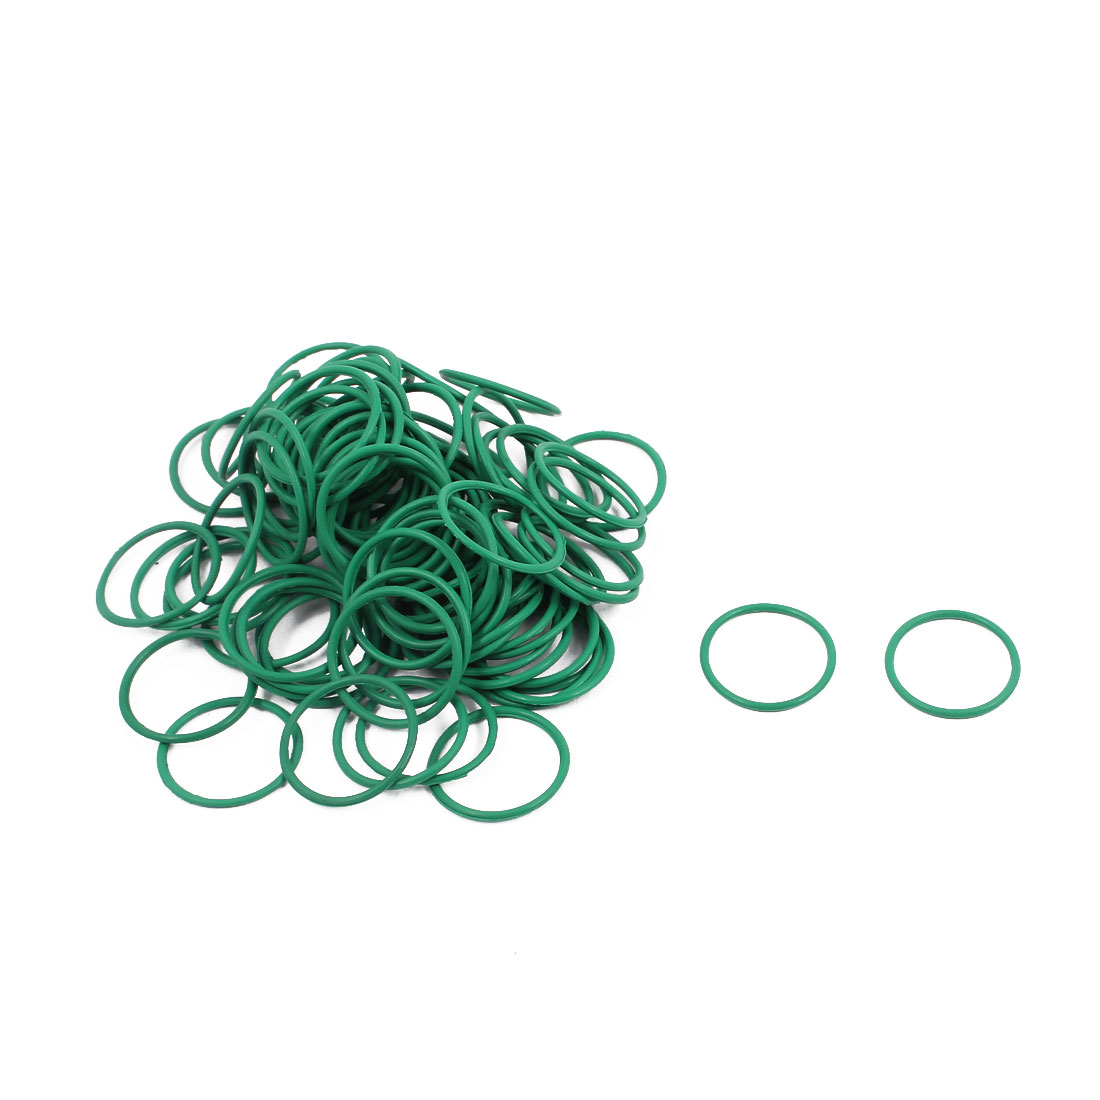 100Pcs 15mm x 1mm FKM Nitrile Rubber O-rings Heat Resistant Sealing Ring Grommets Green